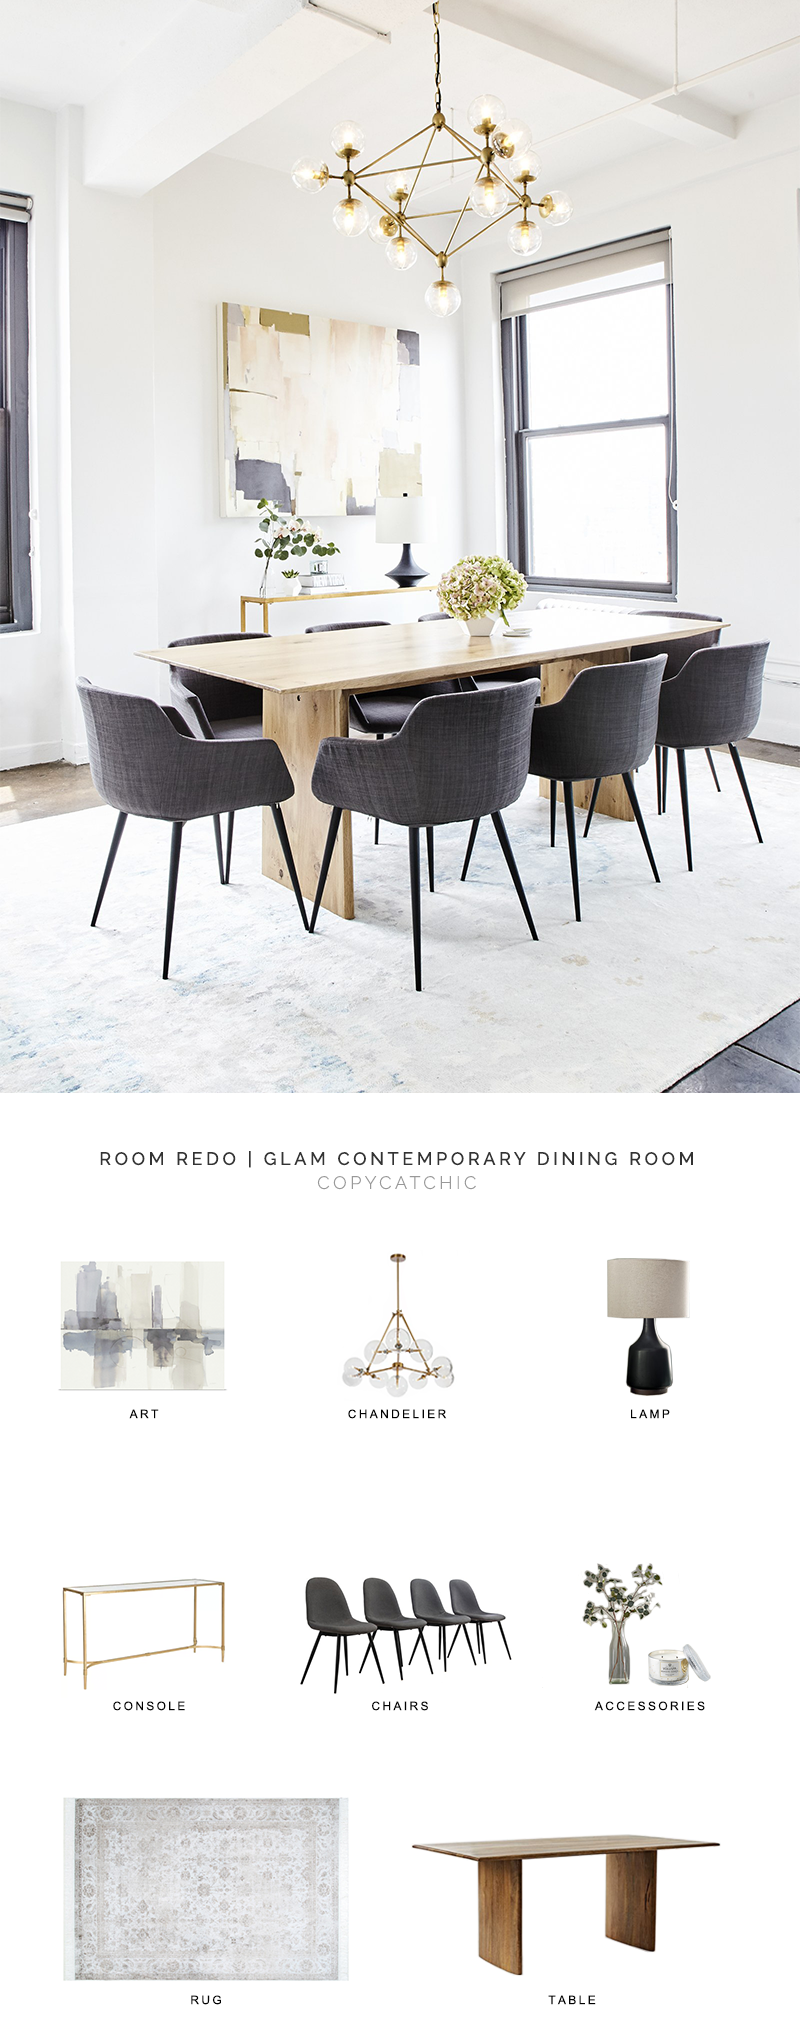 modern dining room look for less, copycatchic luxe living for less, budget home decor and design, daily finds, home trends, sales, budget travel and room redos